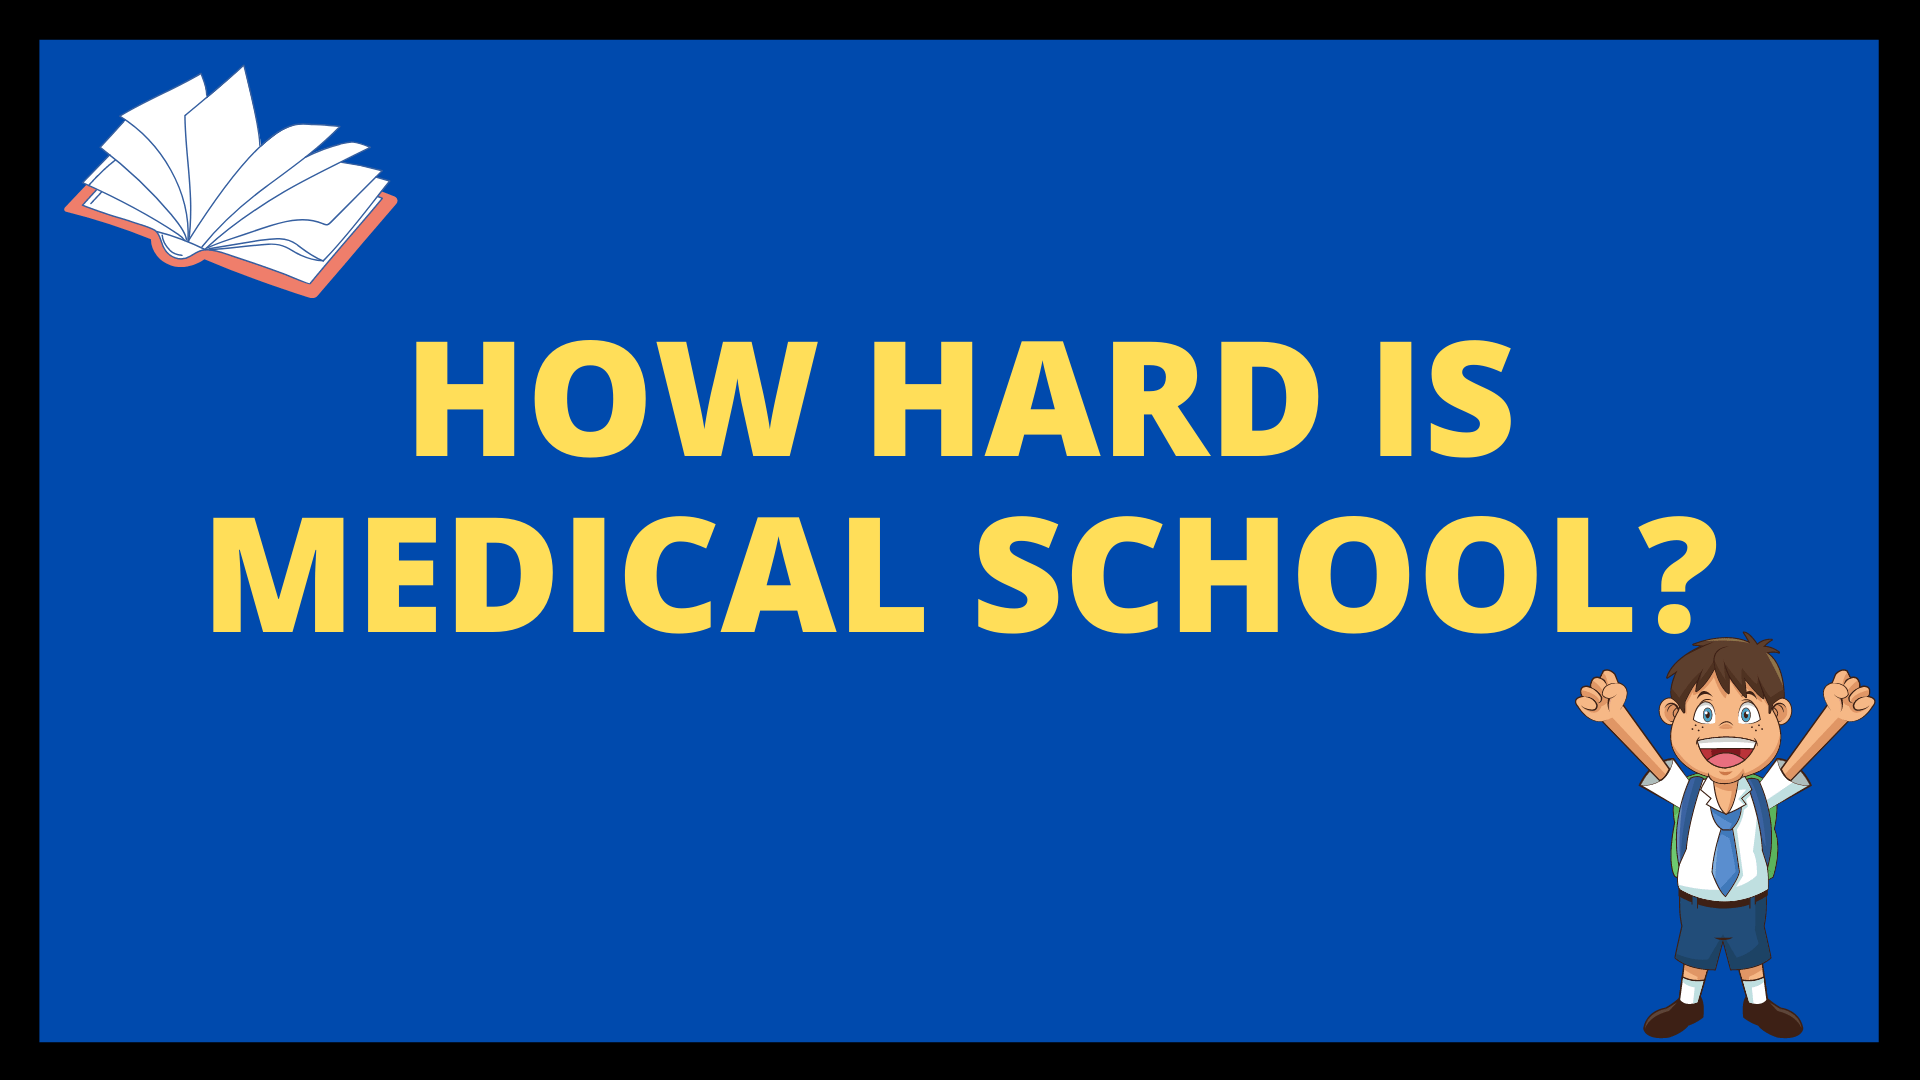 How hard is medical school?